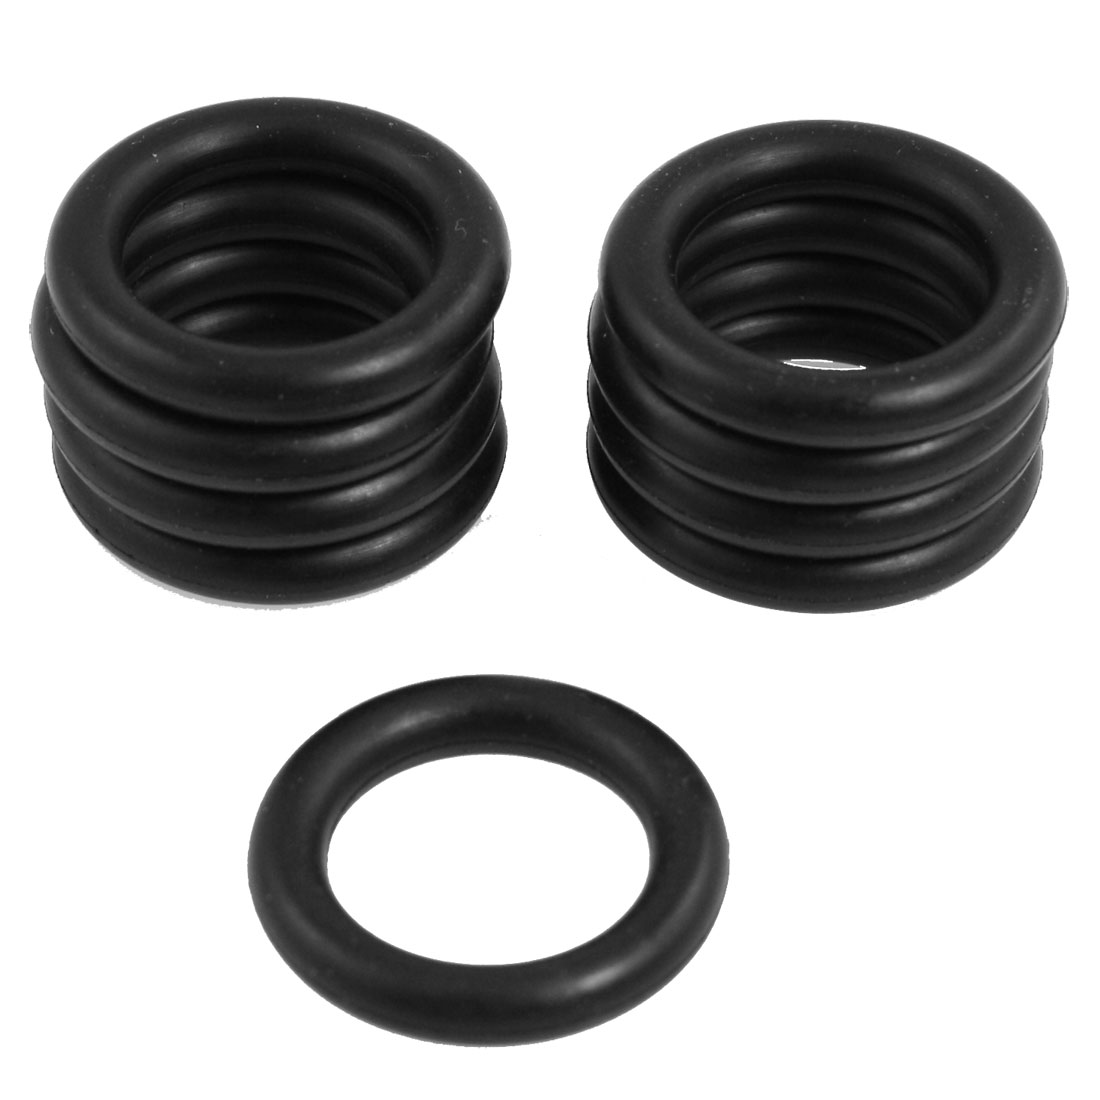 10 Pcs Black Nitrile Rubber O Ring NBR Seal Washer 30mm x 5mm